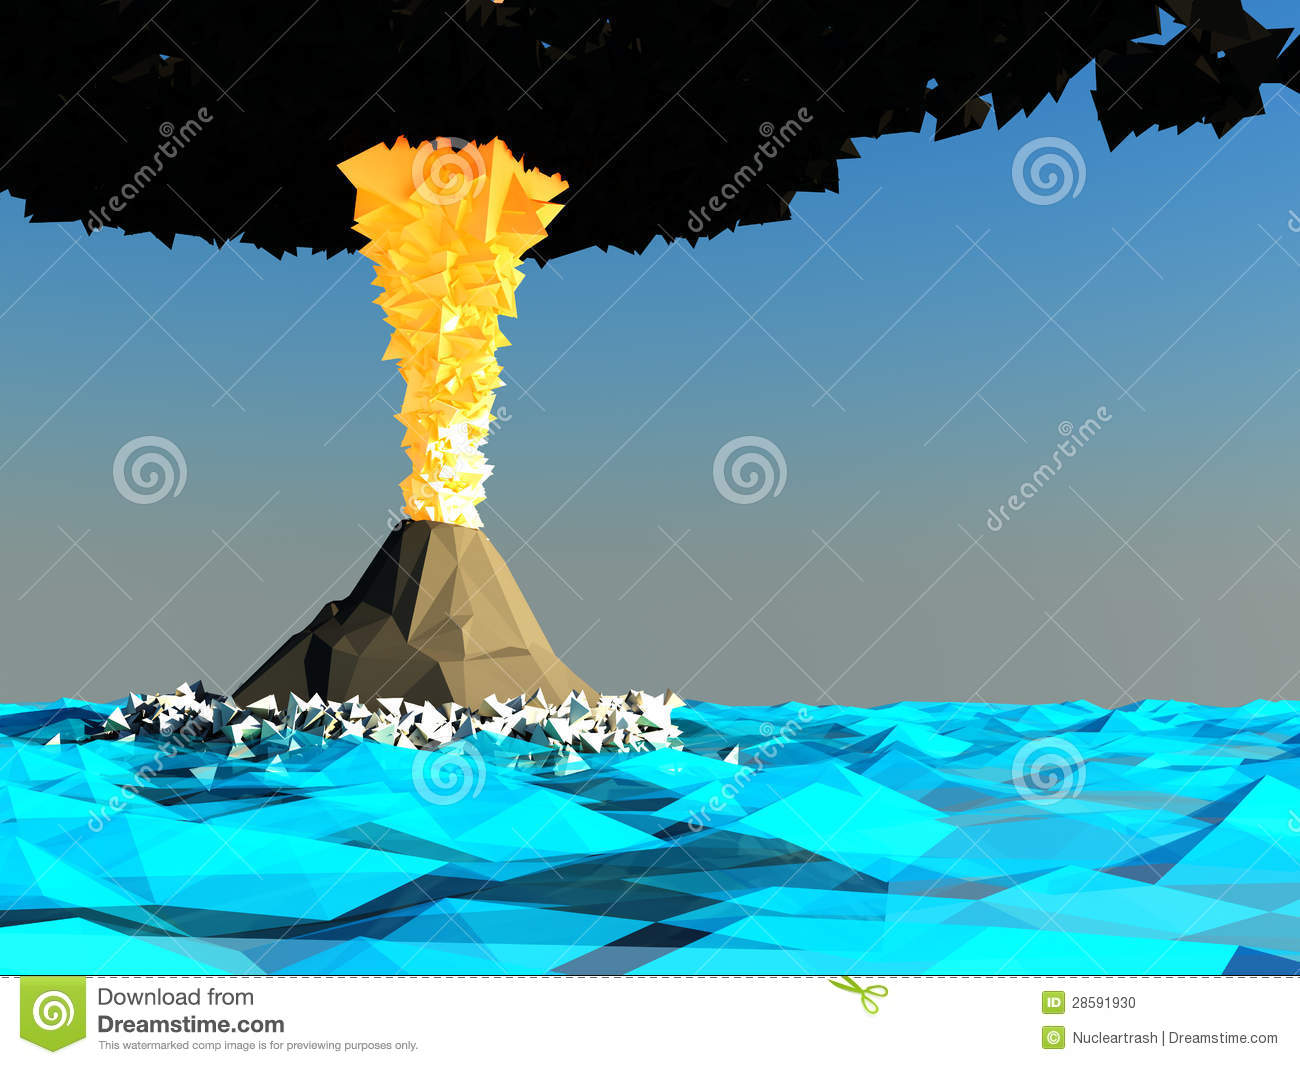 Volcanic Island clipart #17, Download drawings